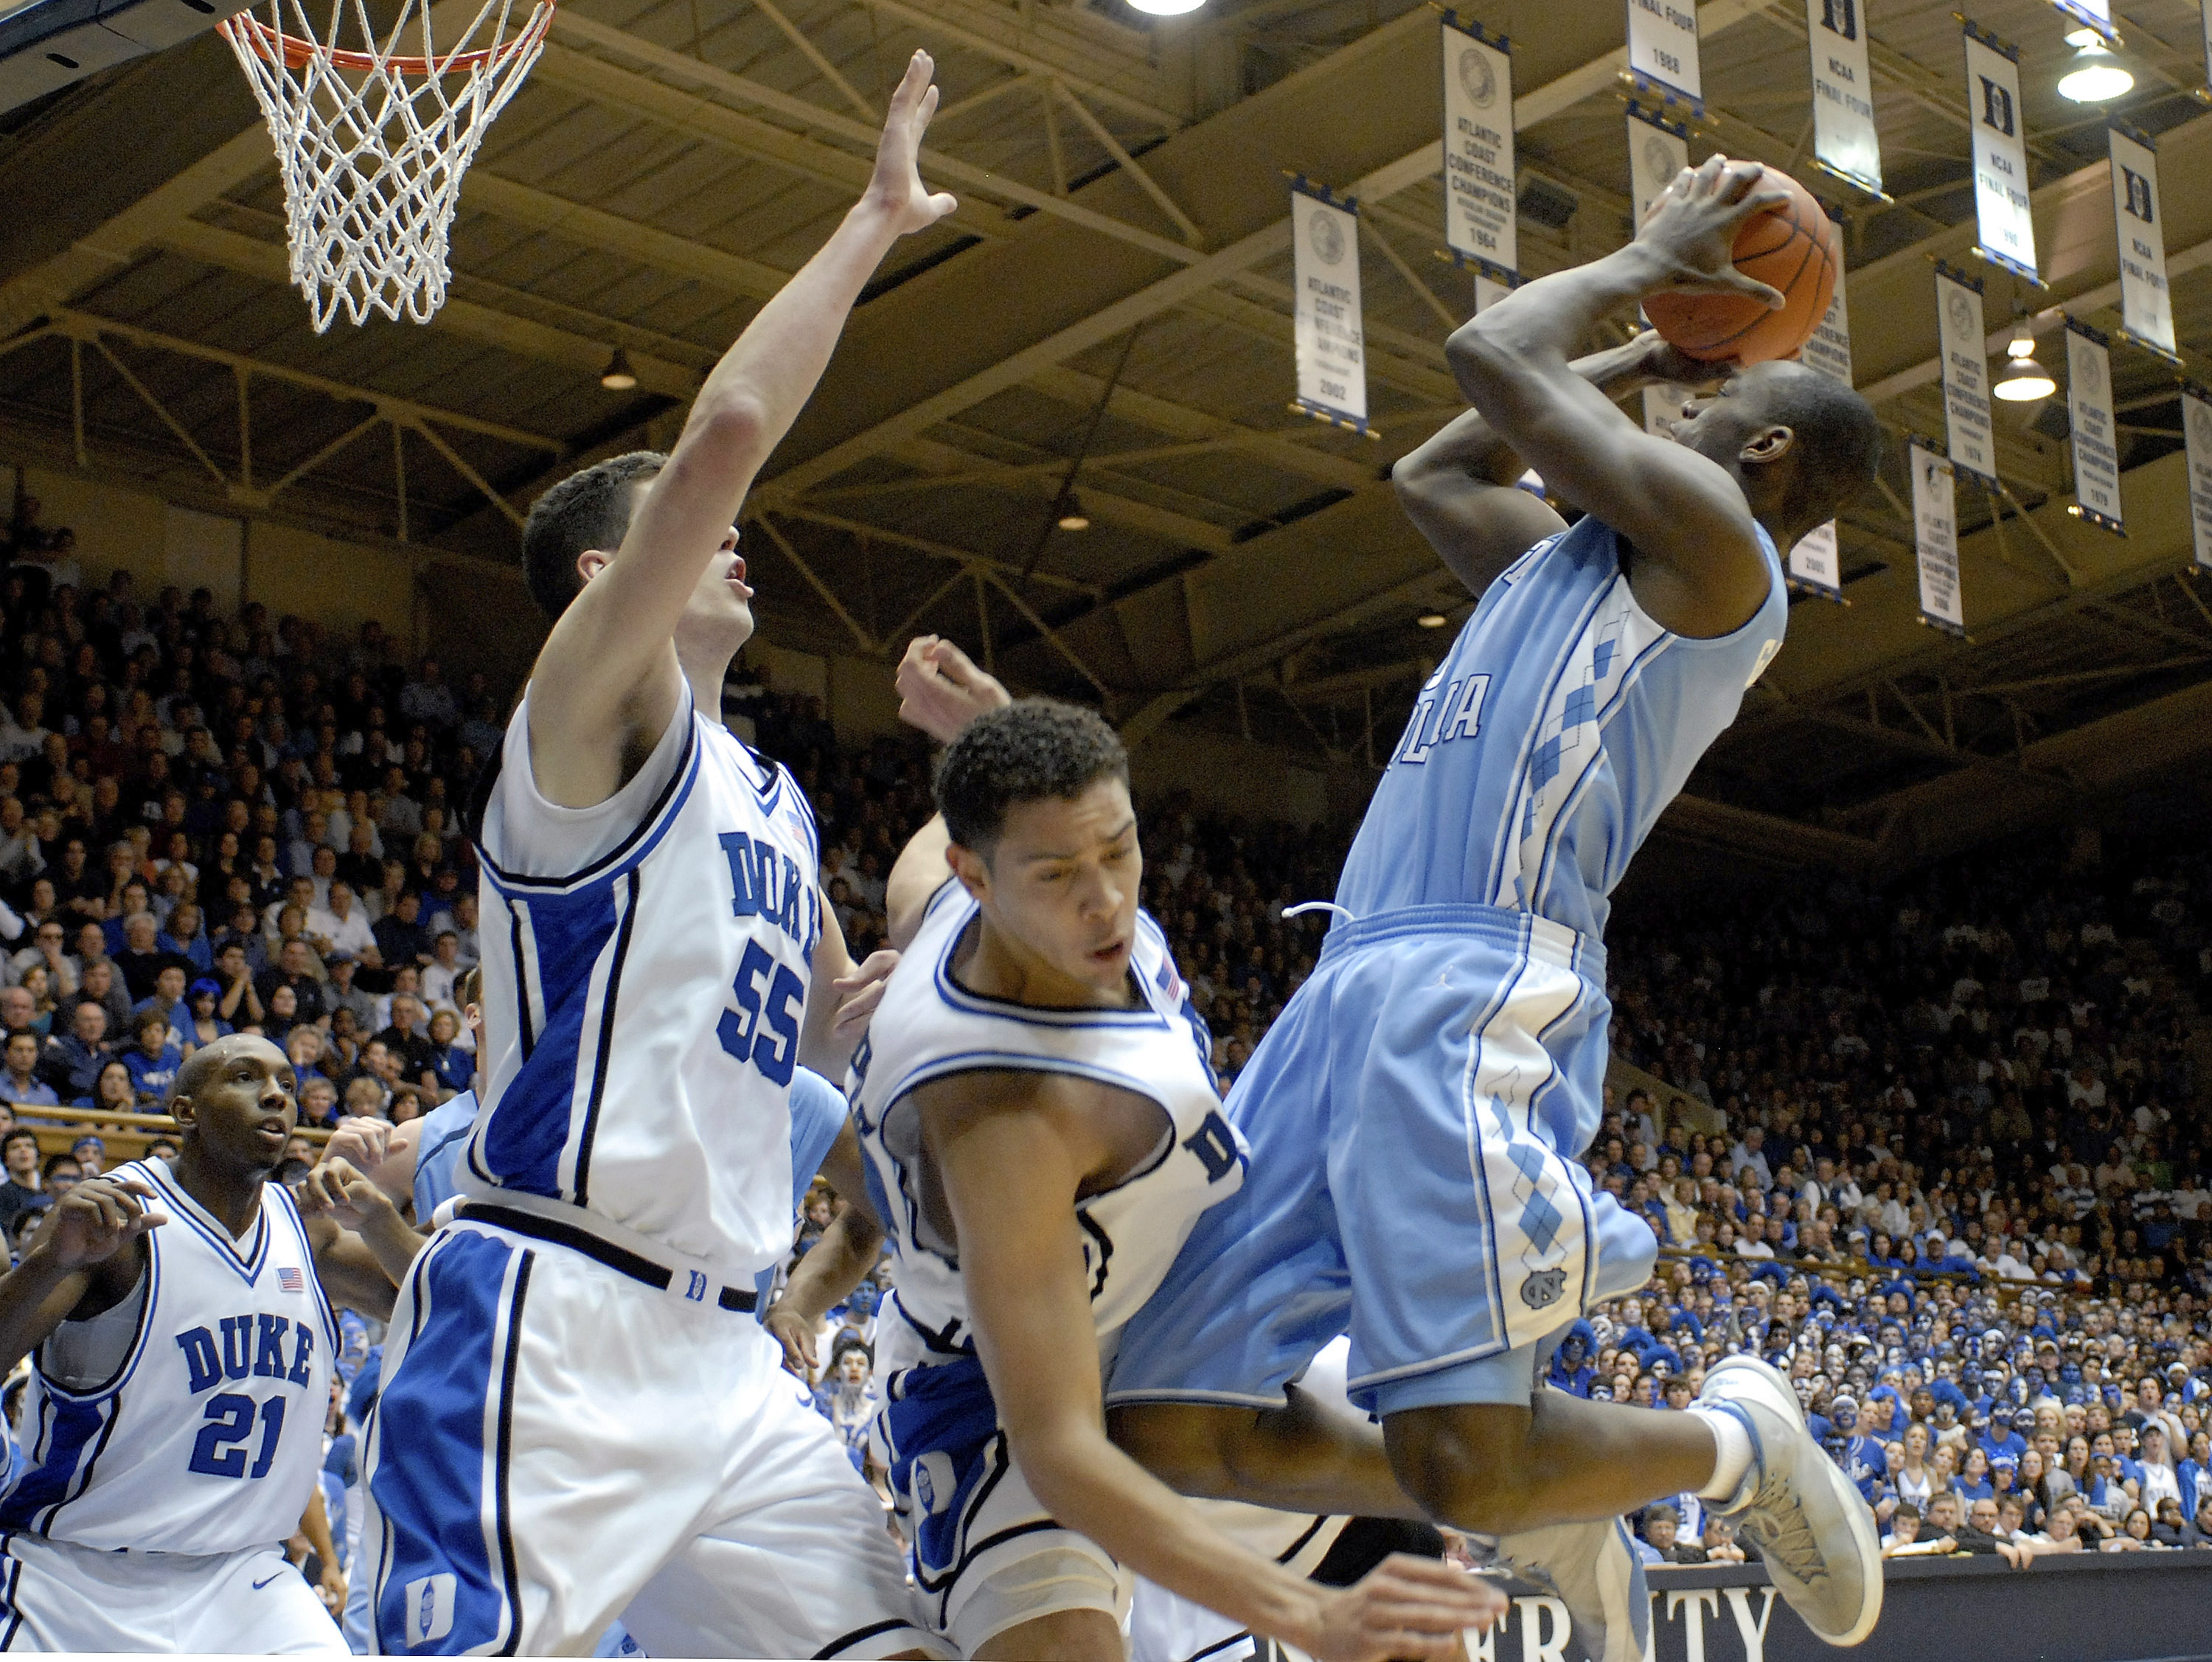 DURHAM, NC - FEBRUARY 07:  David McClure #14 of the Duke University Blue Devils fouls Marcus Ginyard #1 of the North Carolina Tar Heels during their game on February 7, 2007 at Cameron Indoor Stadium in Durham, North Carolina.  (Photo by Grant Halverson/Getty Images)